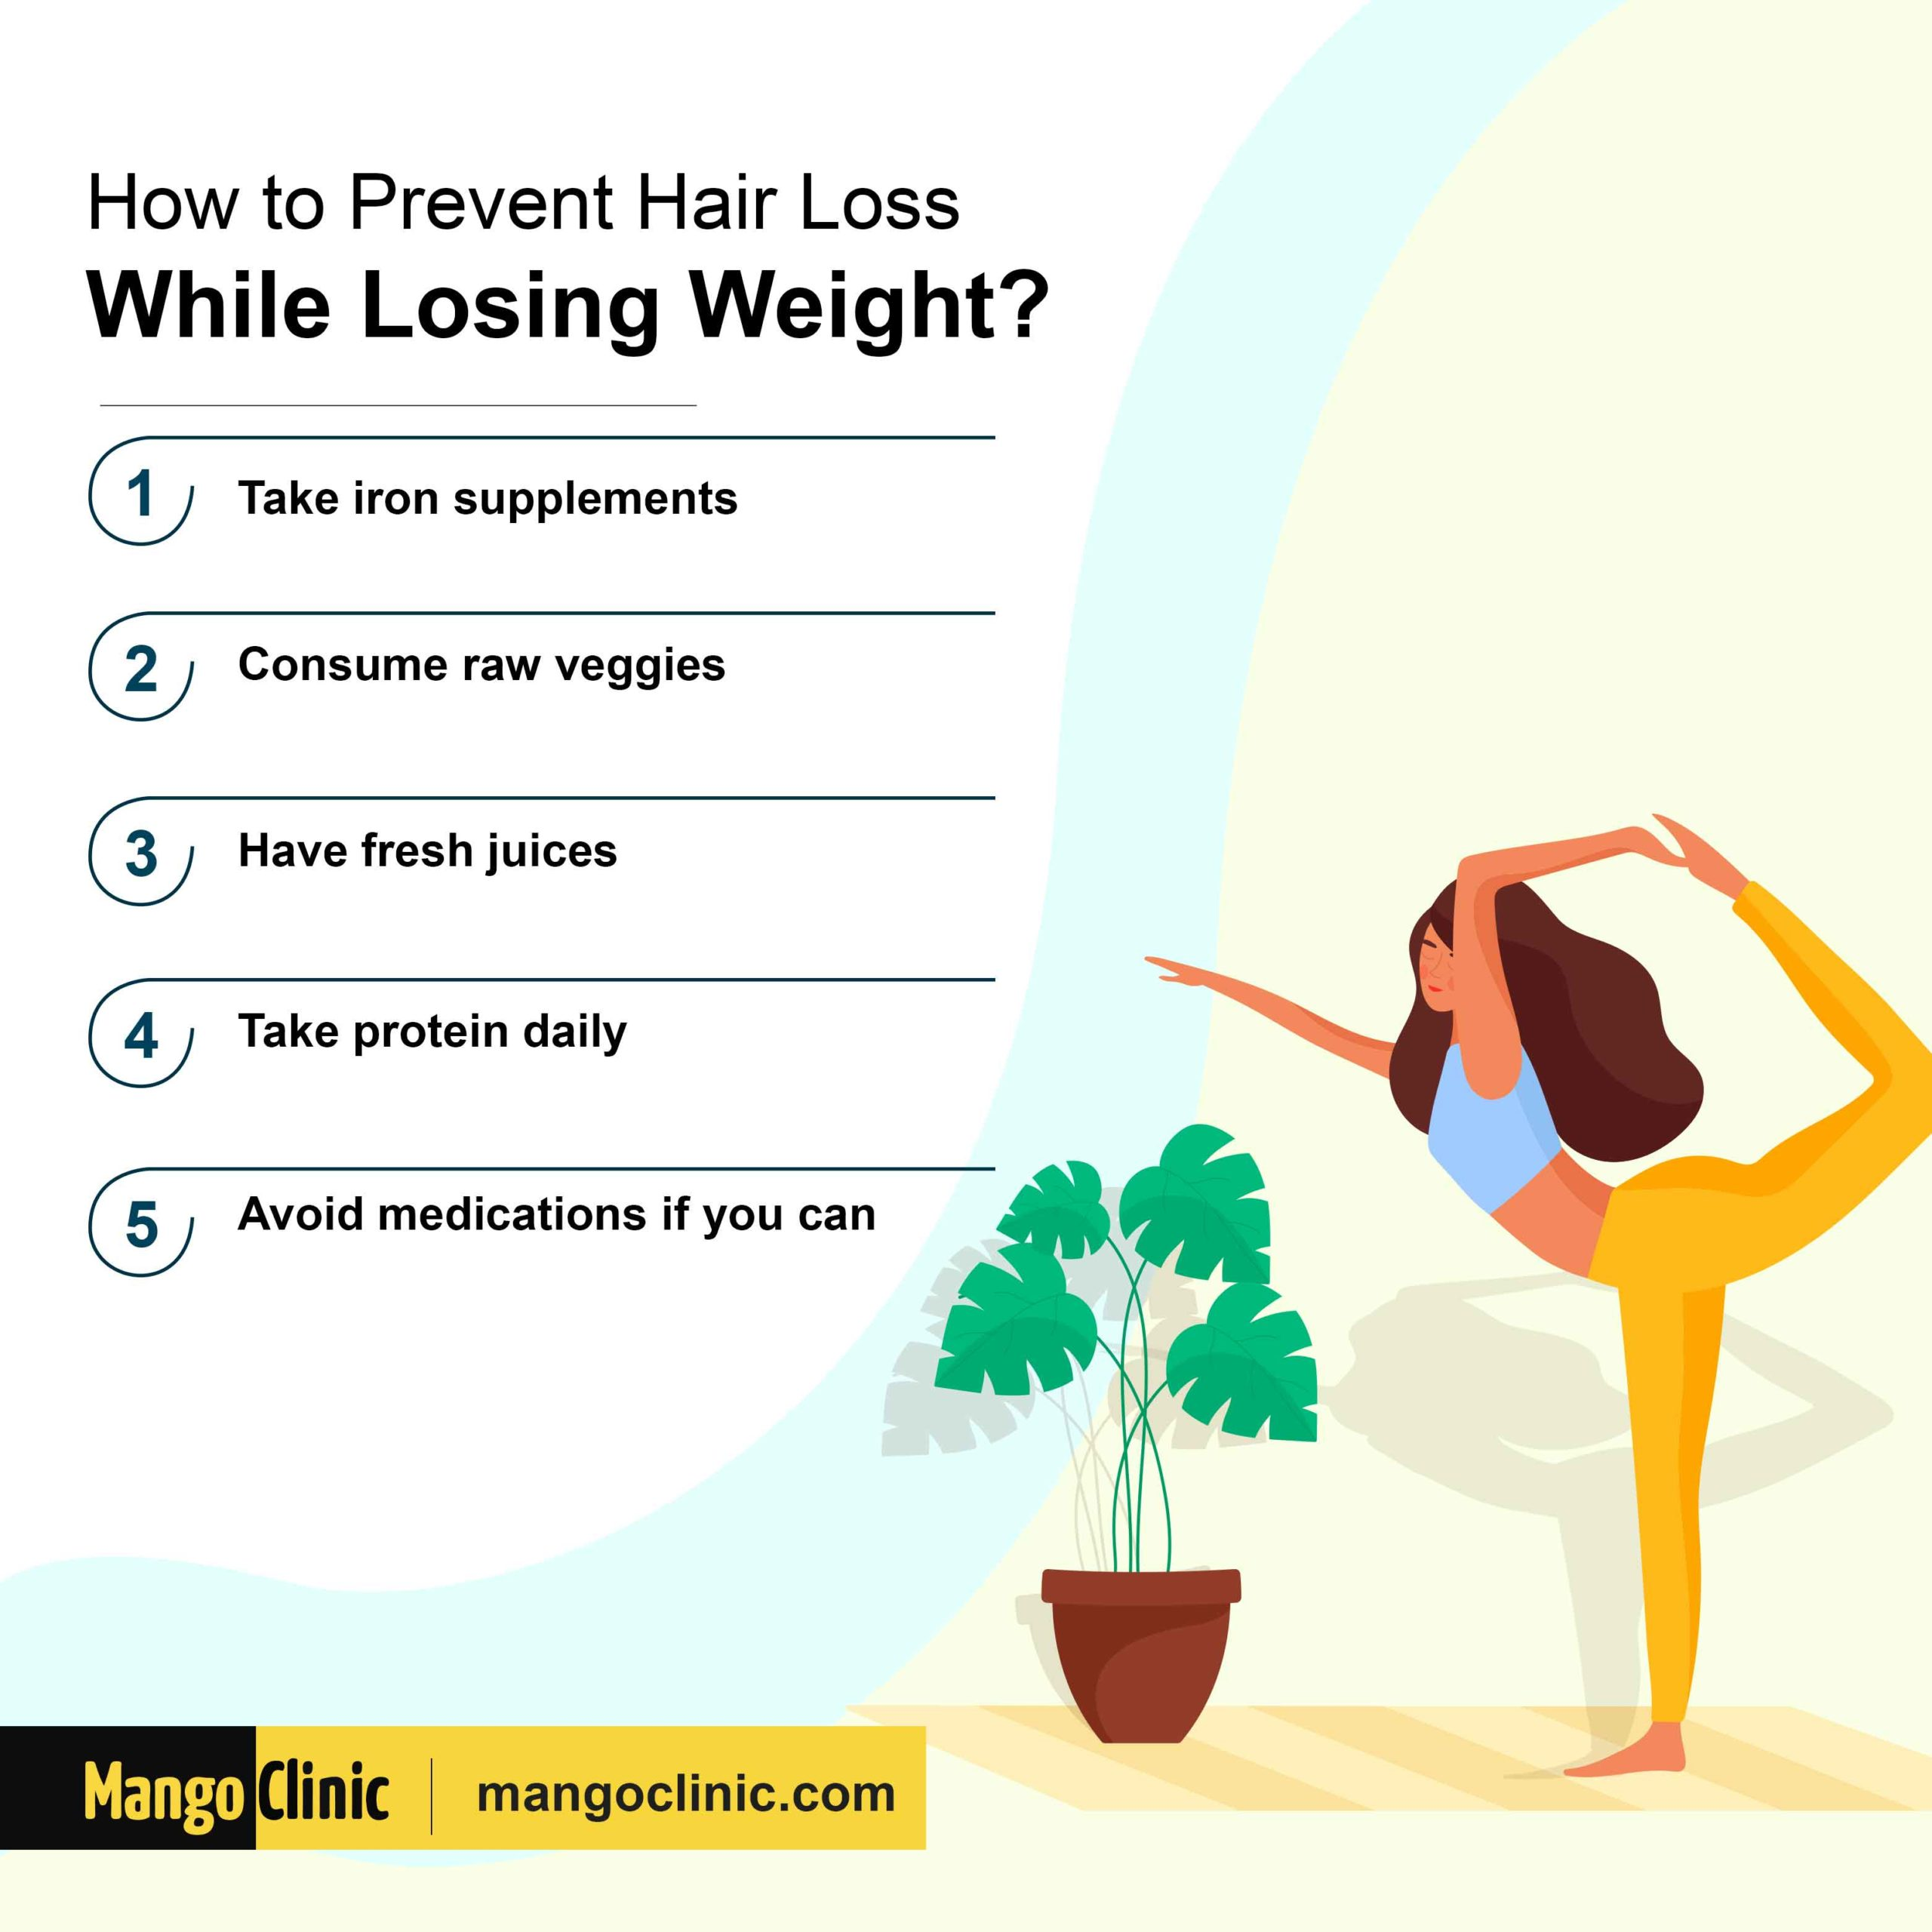 Prevent hair loss while losing weight